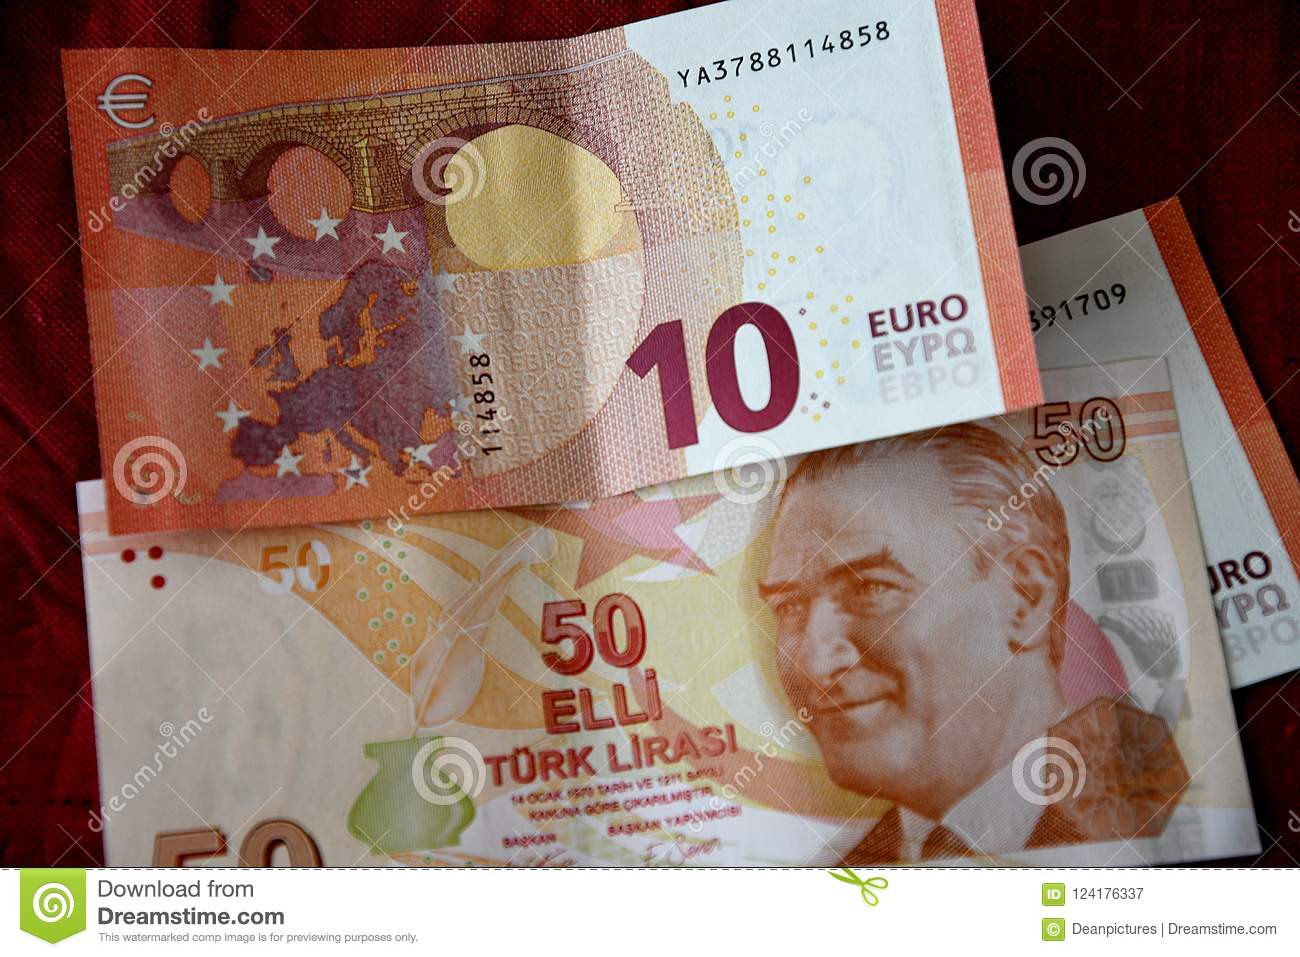 Turkish Lira Vers Usa Dollar And Euro Since Turkey Has Financial Crand Lira Is Low In Rate P O Francis Joseph Dean Deanpictures